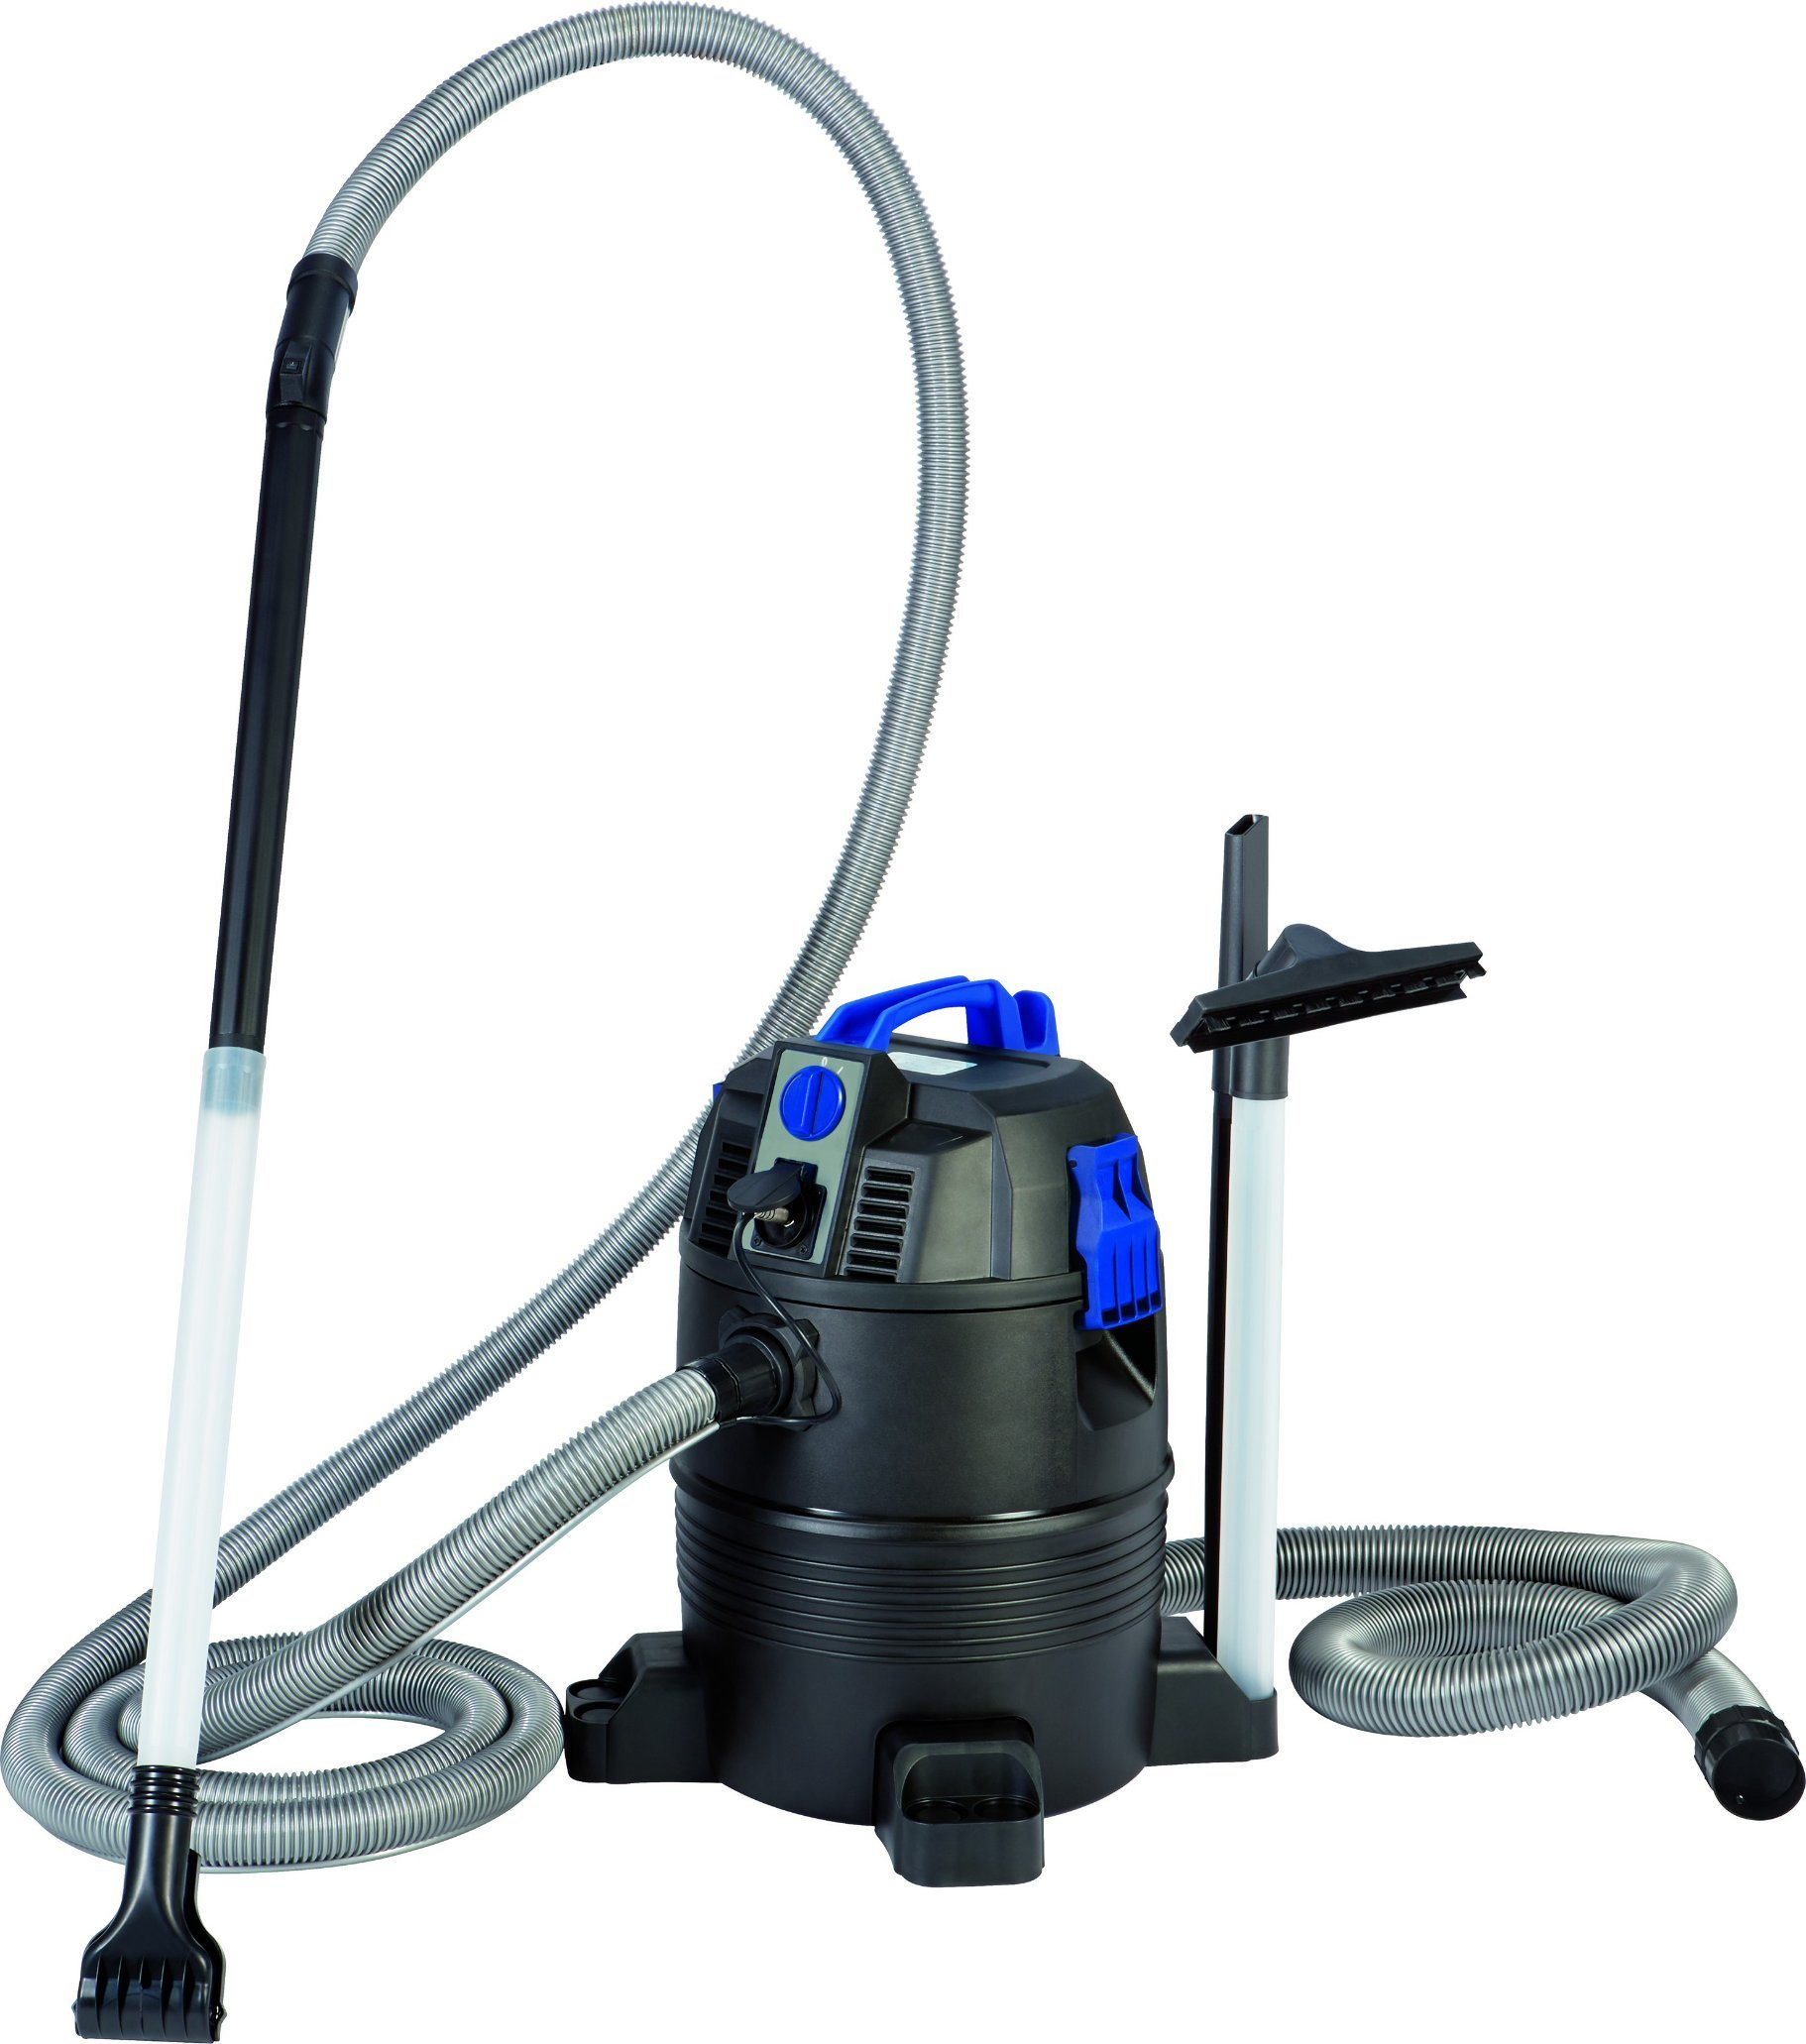 310-35L 1200-1600W Plastic Tank Wet Dry Water Dust Vacuum Cleaner Pond Cleaner with or Without Socket